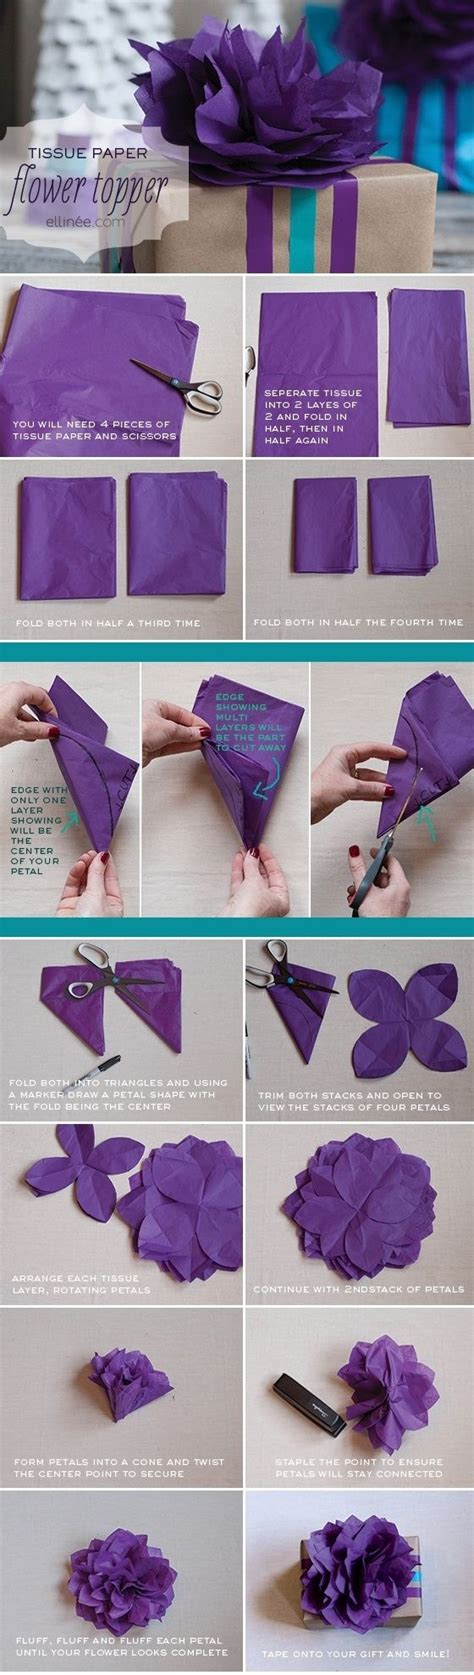 diy tissue paper crafts diy tissue paper flower pictures photos and images for